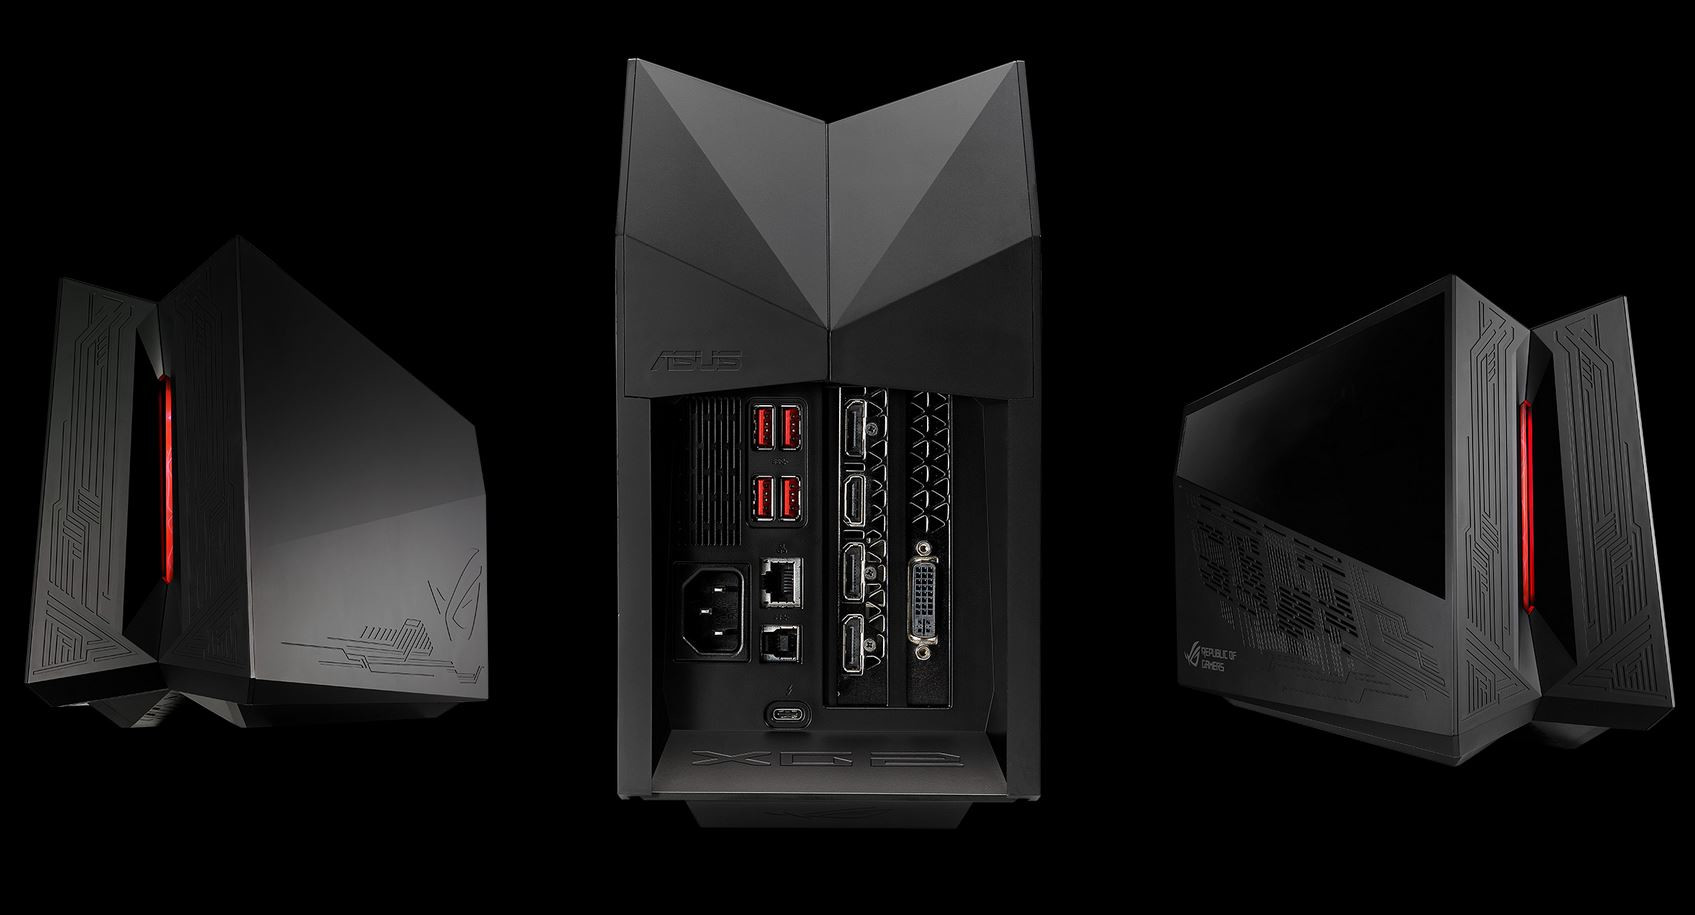 asus-rog-xg-station-2-external-graphics-enclosure-600-02